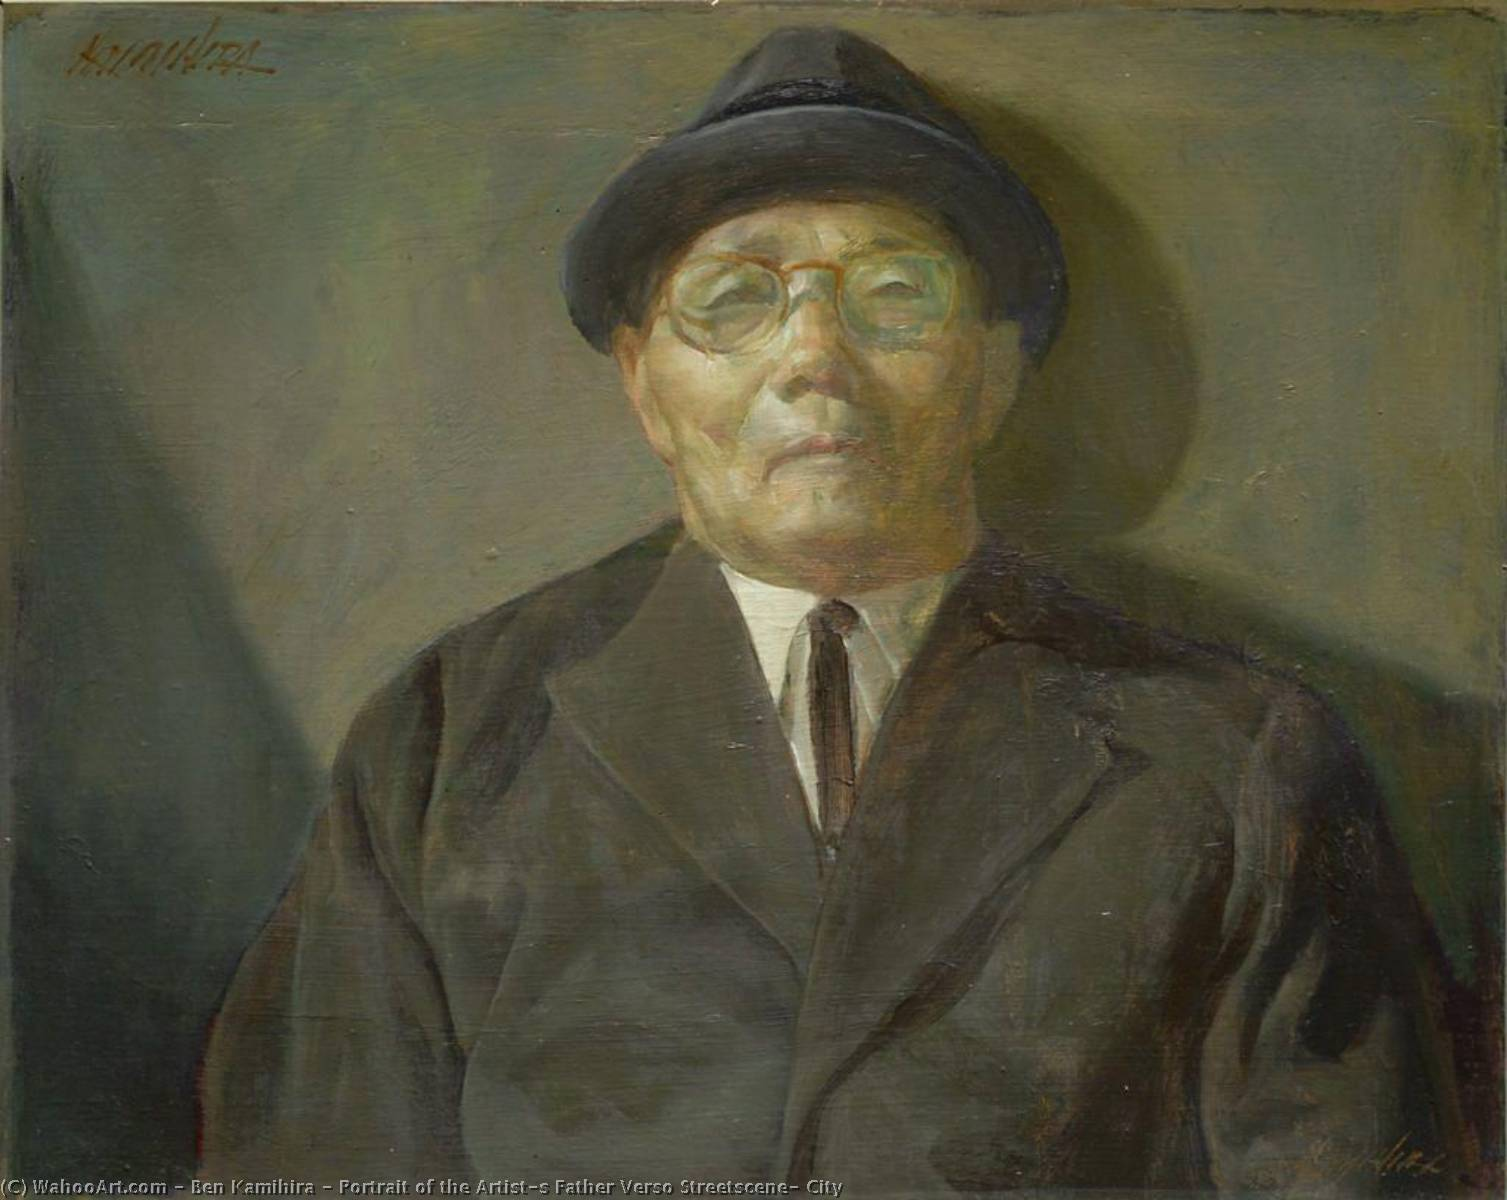 Portrait of the Artist`s Father Verso Streetscene, City, 1961 by Ben Kamihira | Oil Painting | WahooArt.com